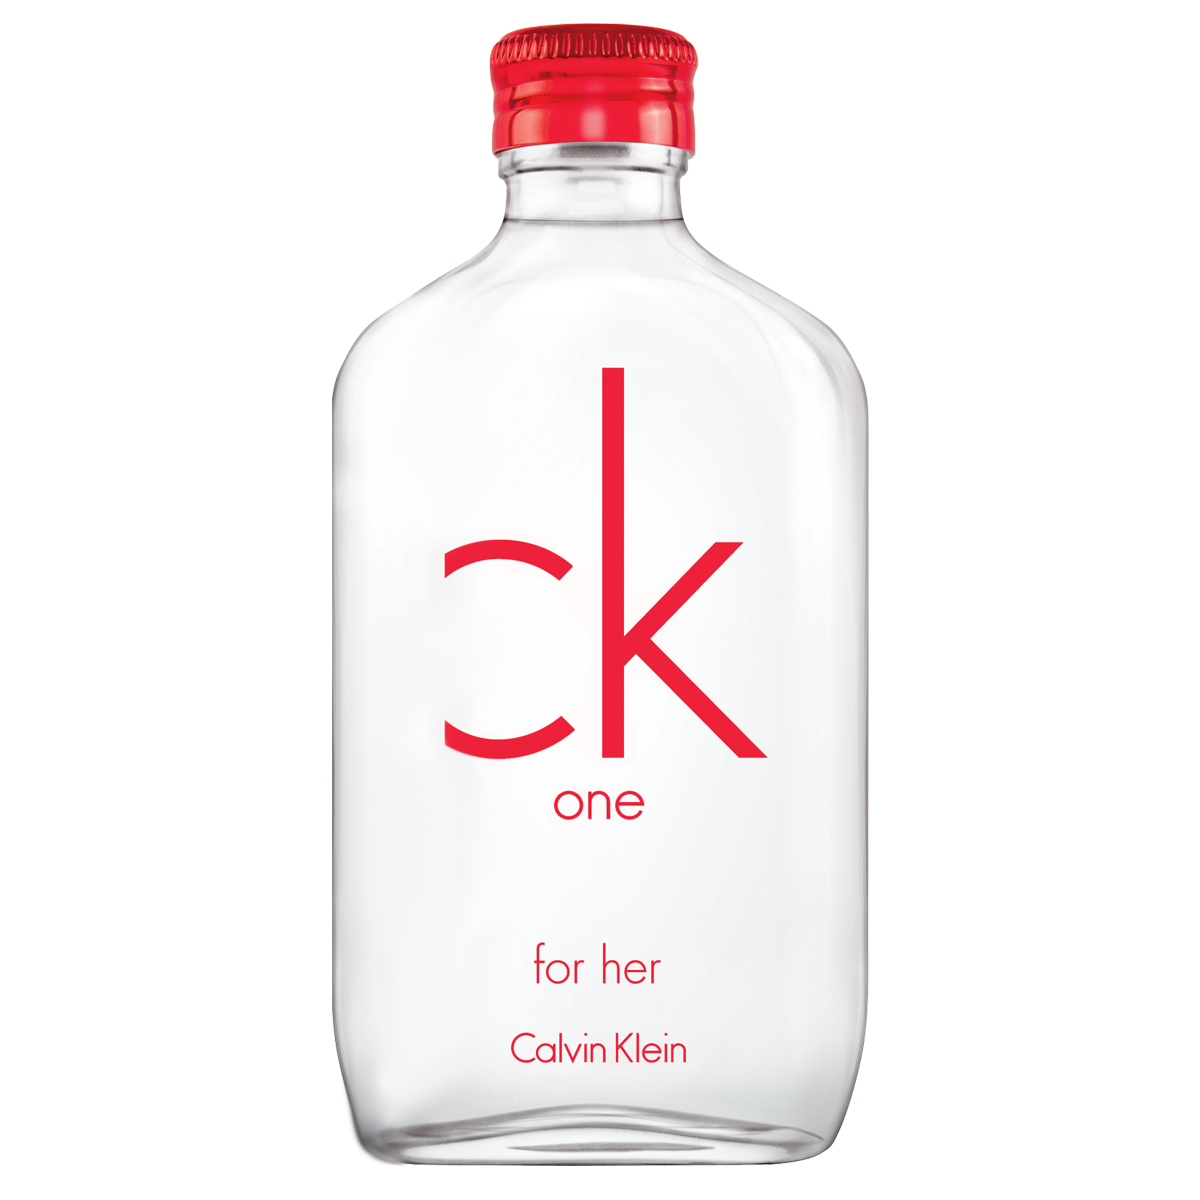 Eau de Toilette ck one Red Edition for Her - CALVIN KLEIN